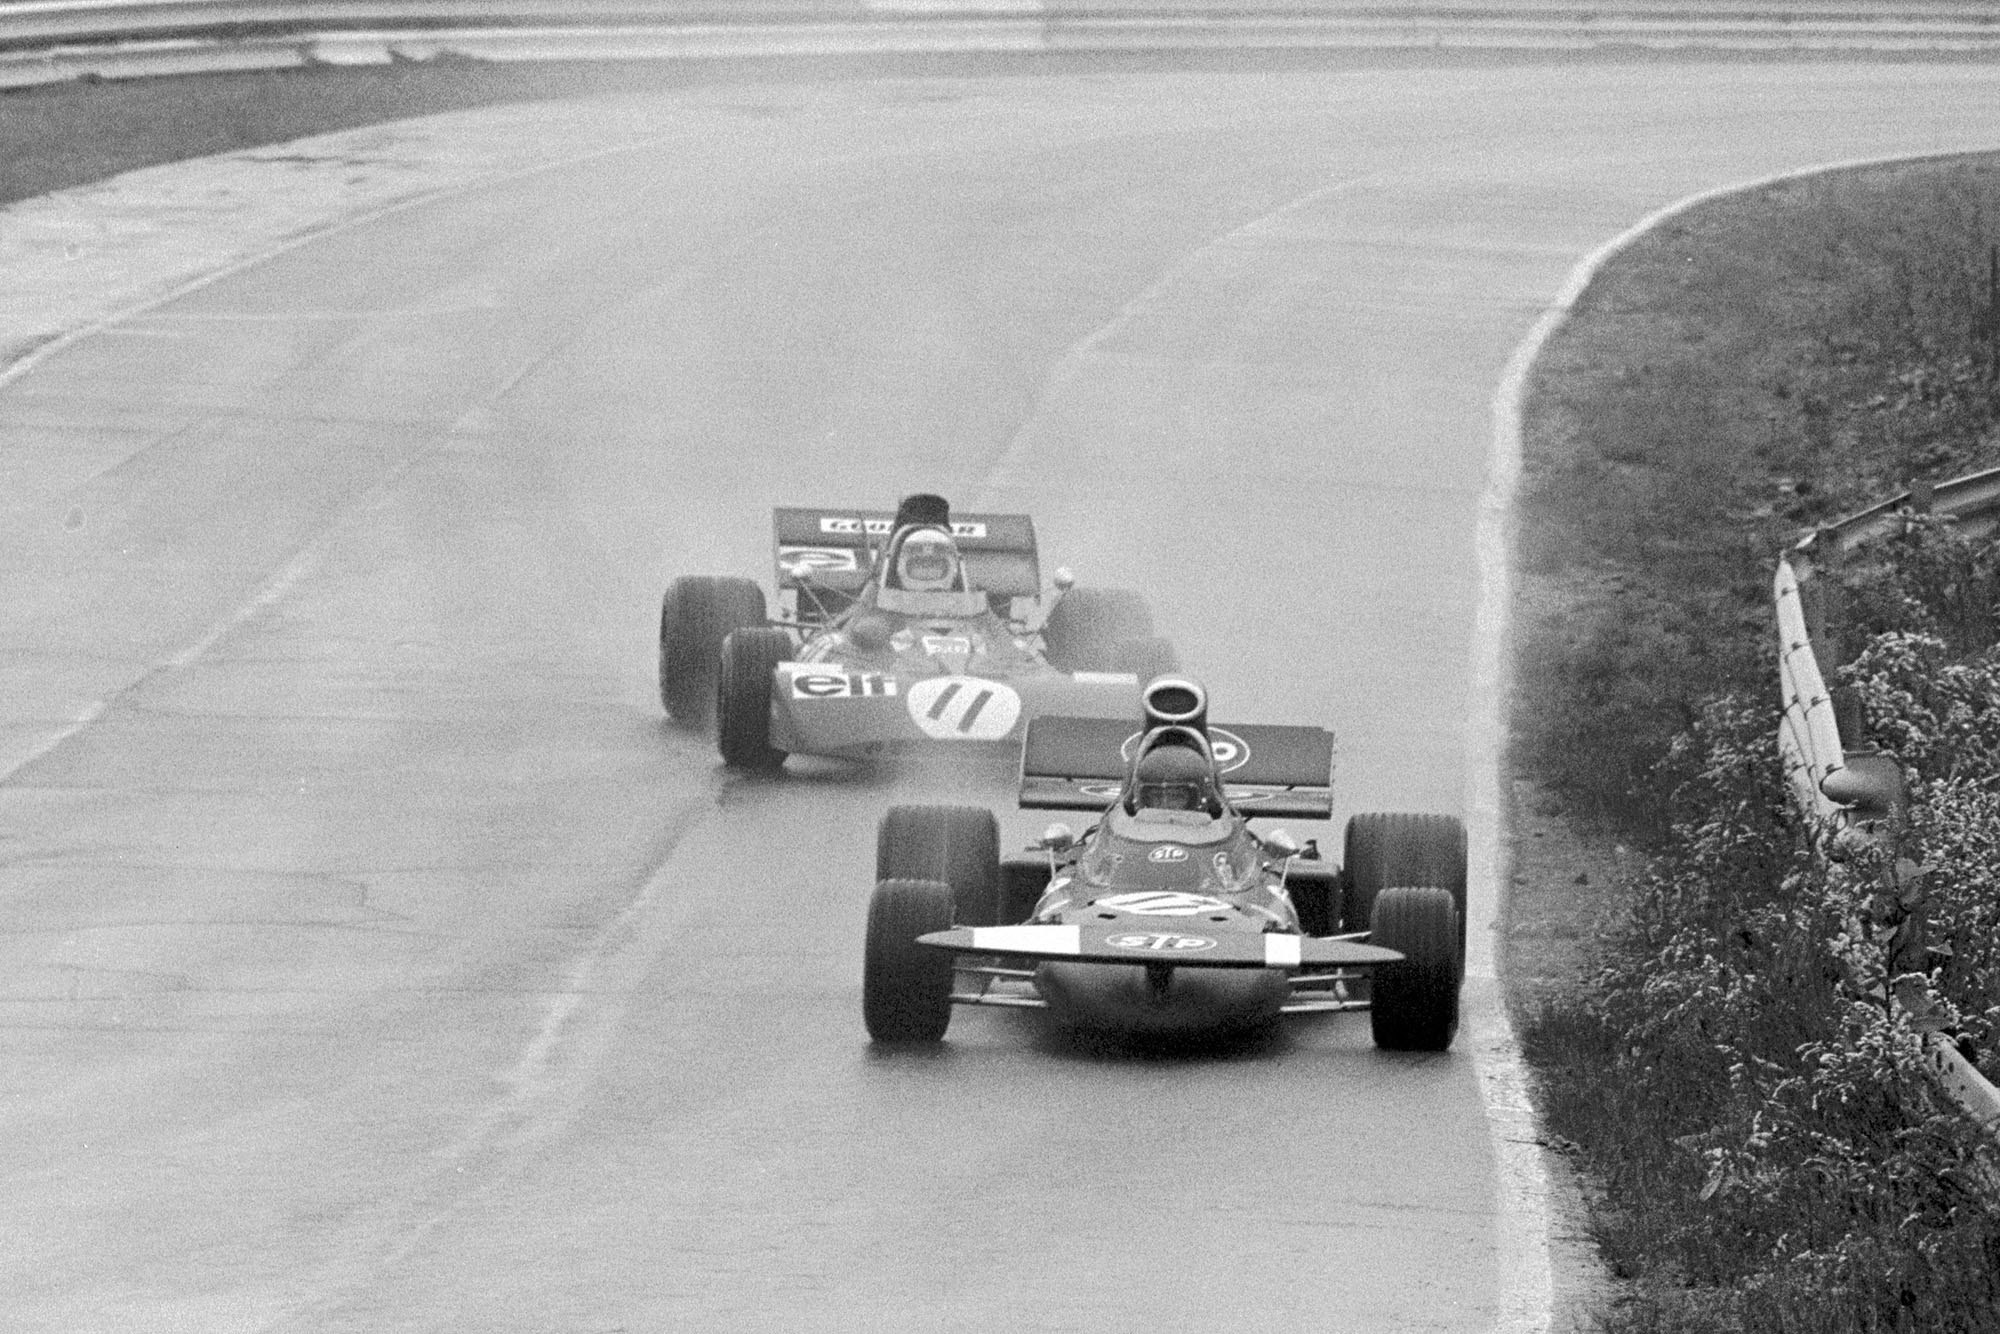 March's Ronnie Peterson and Tyrrell's Jackie Stewart fight it out for the lead.